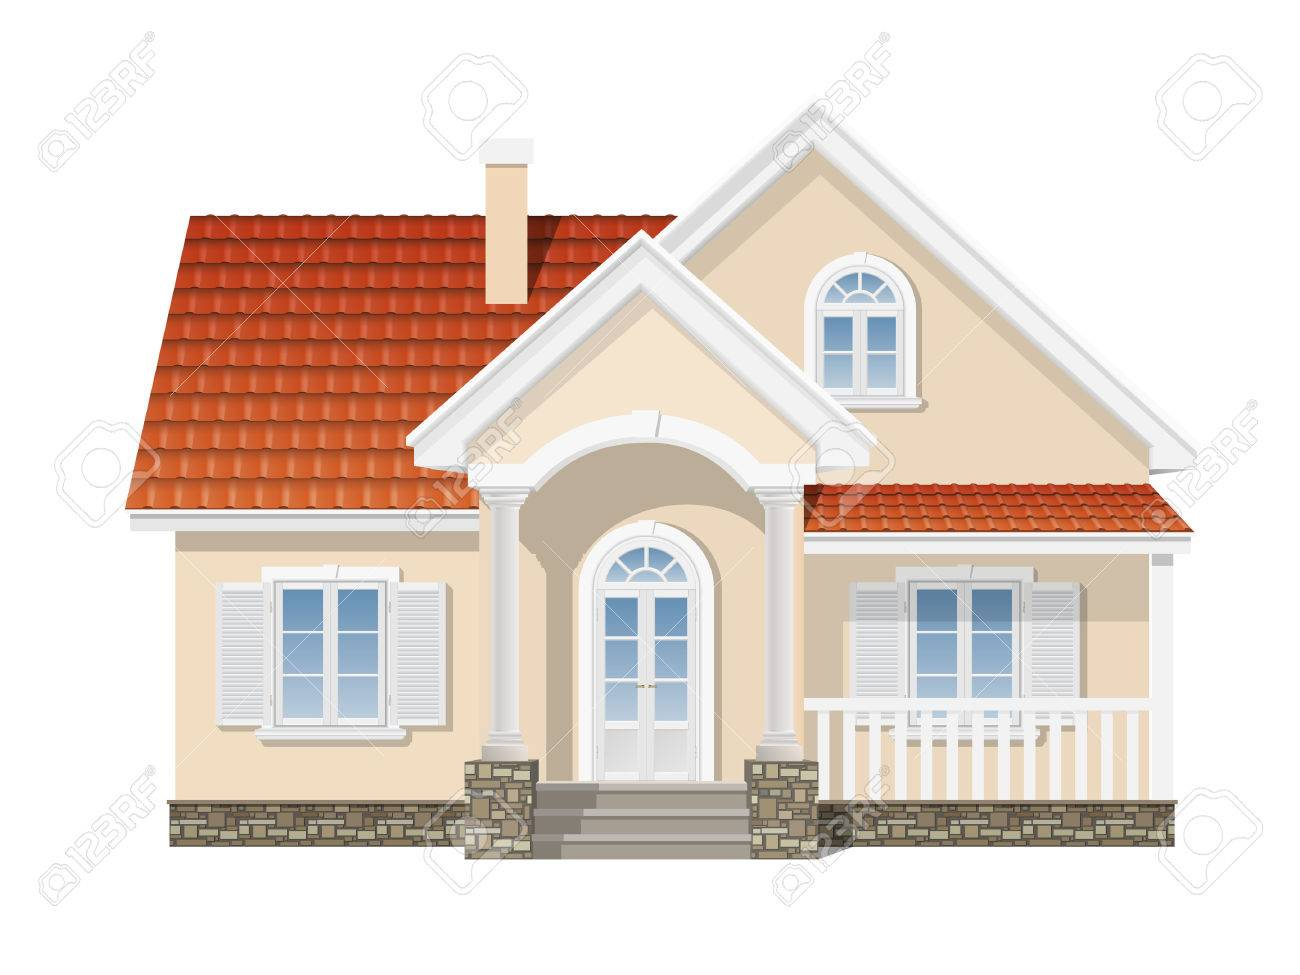 suburban house with a red tile roof Stock Vector - 37162820